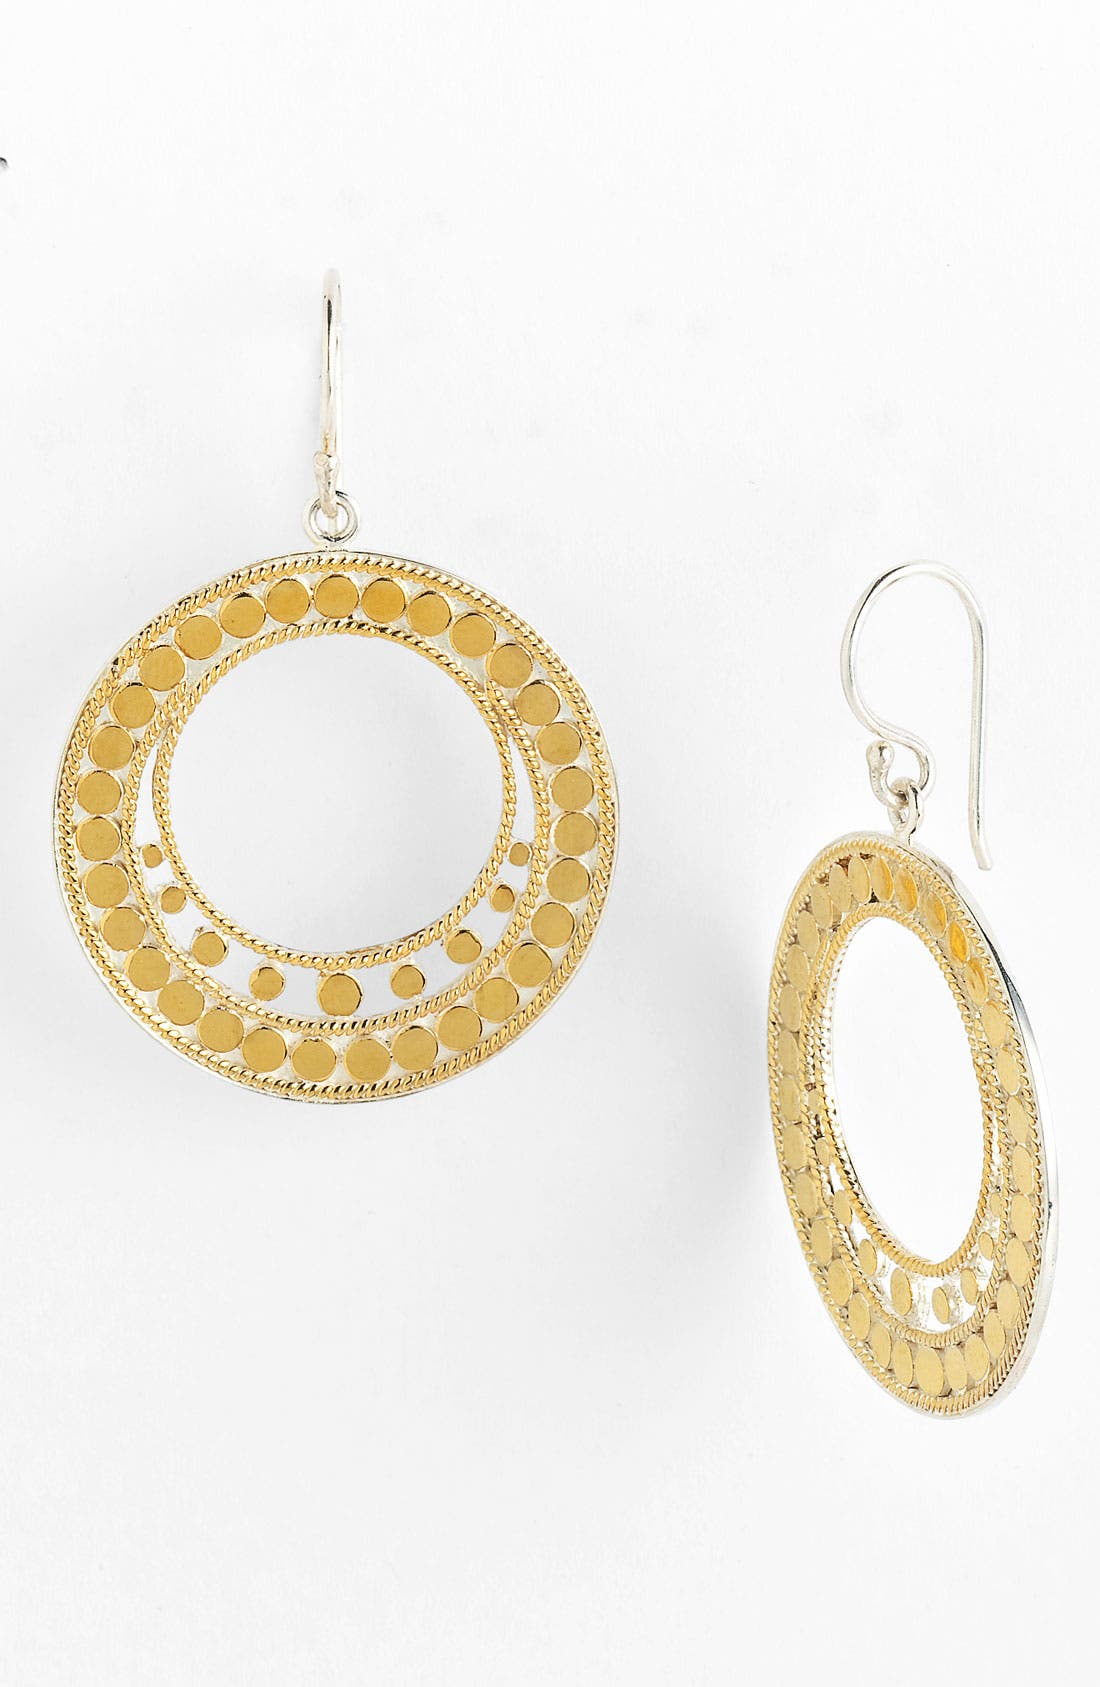 Alternate Image 1 Selected - Anna Beck 'Lombok' Open Disc Earrings (Online Only)